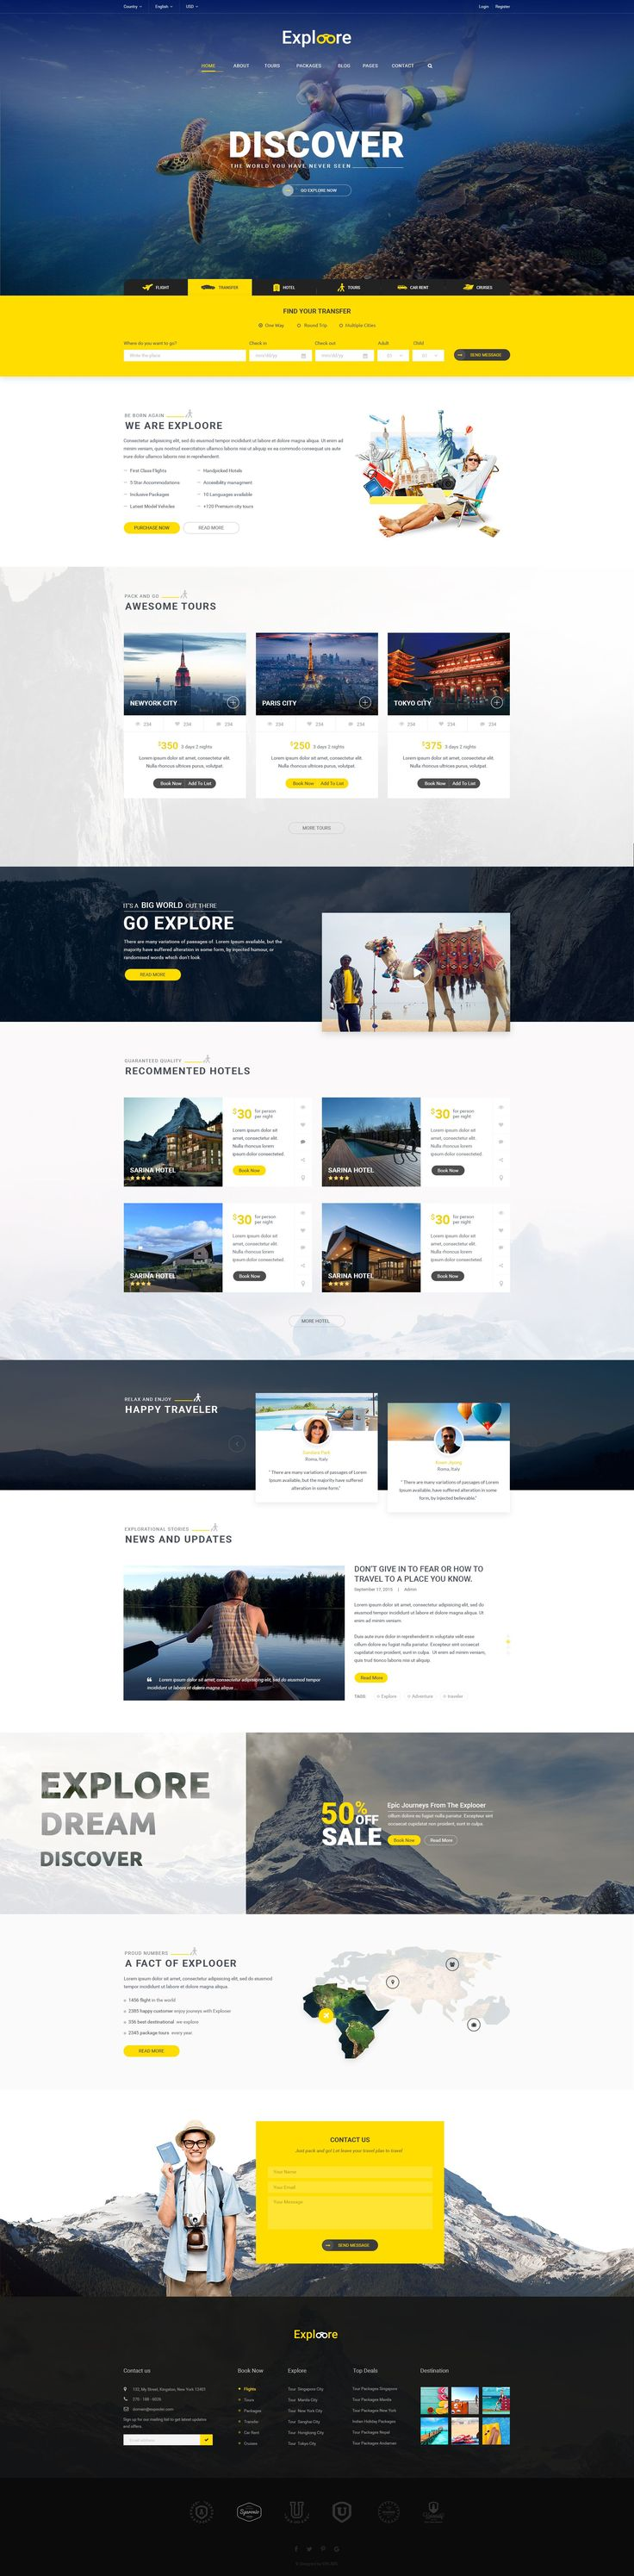 117 best PSD Templates images on Pinterest | Psd templates, Design ...